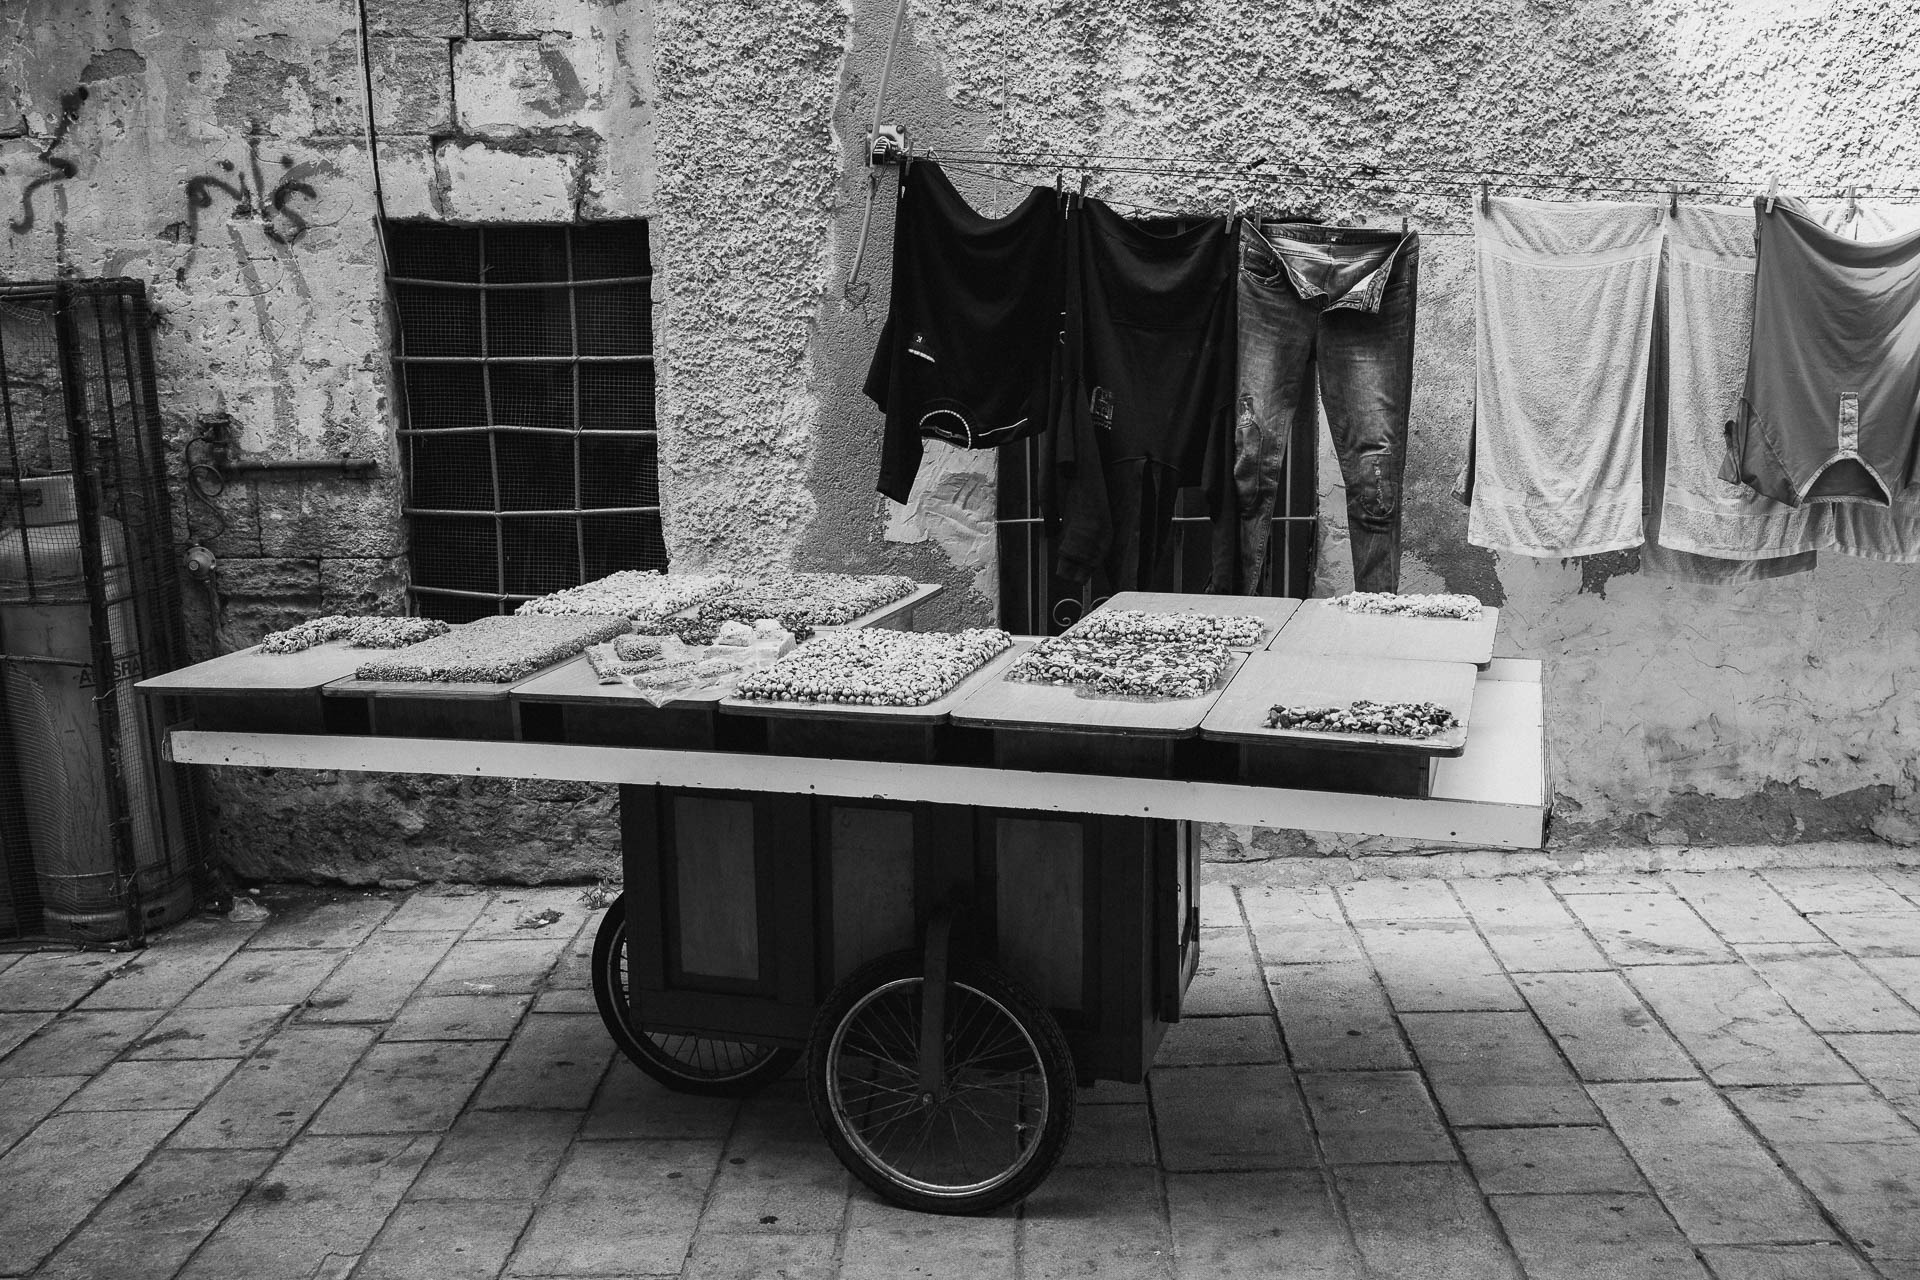 Old Akko, Israel ; Honey nuts cart - vendor: Jumaa Taha